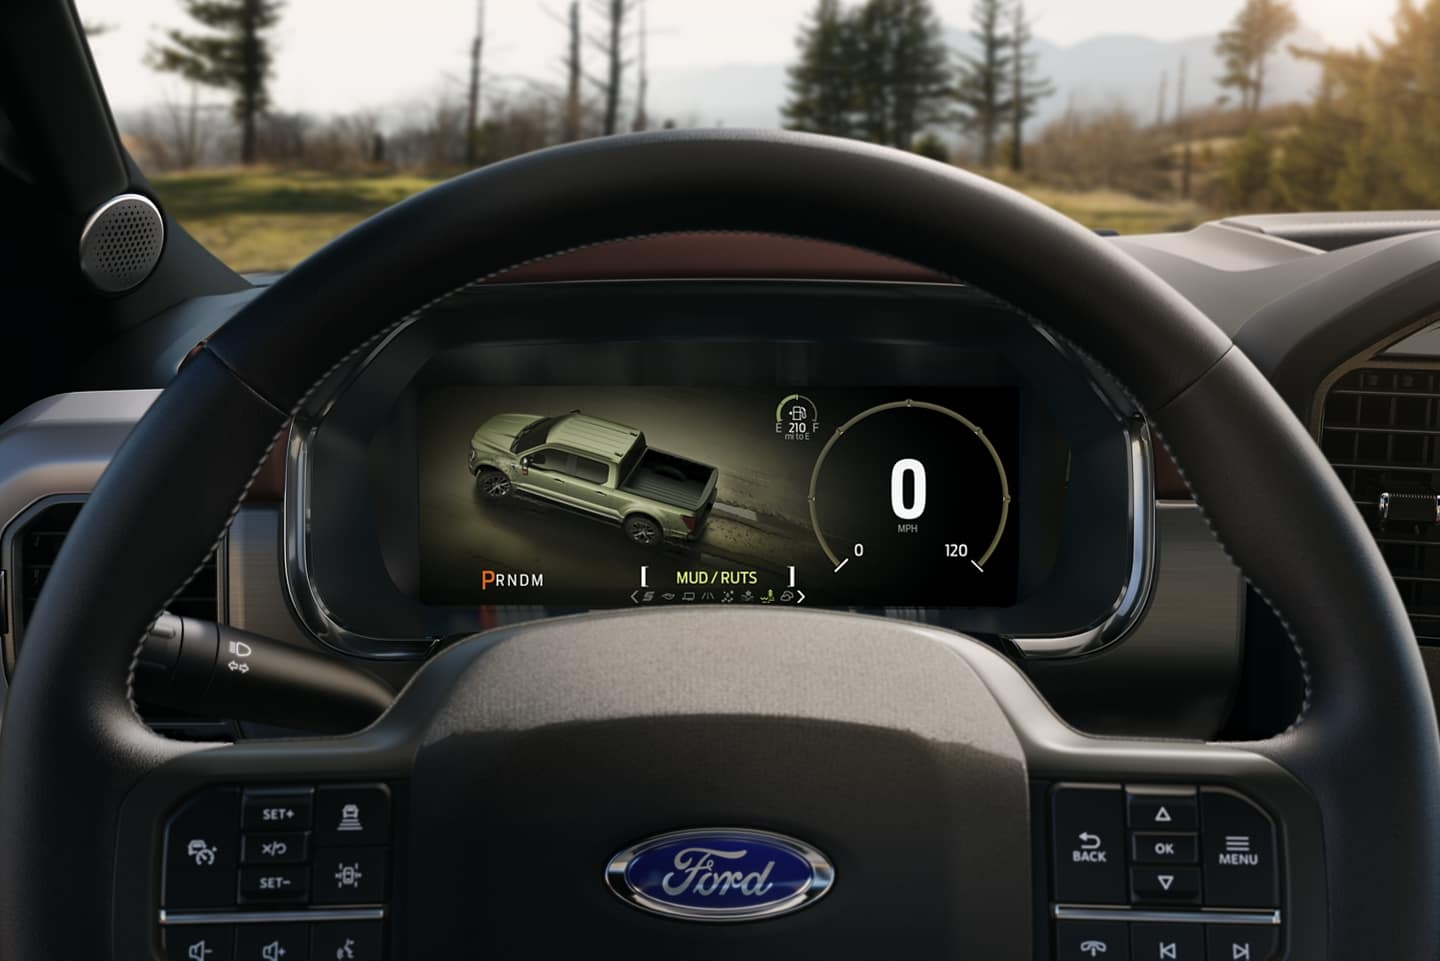 Picture of a Ford F-150 Steering wheel.